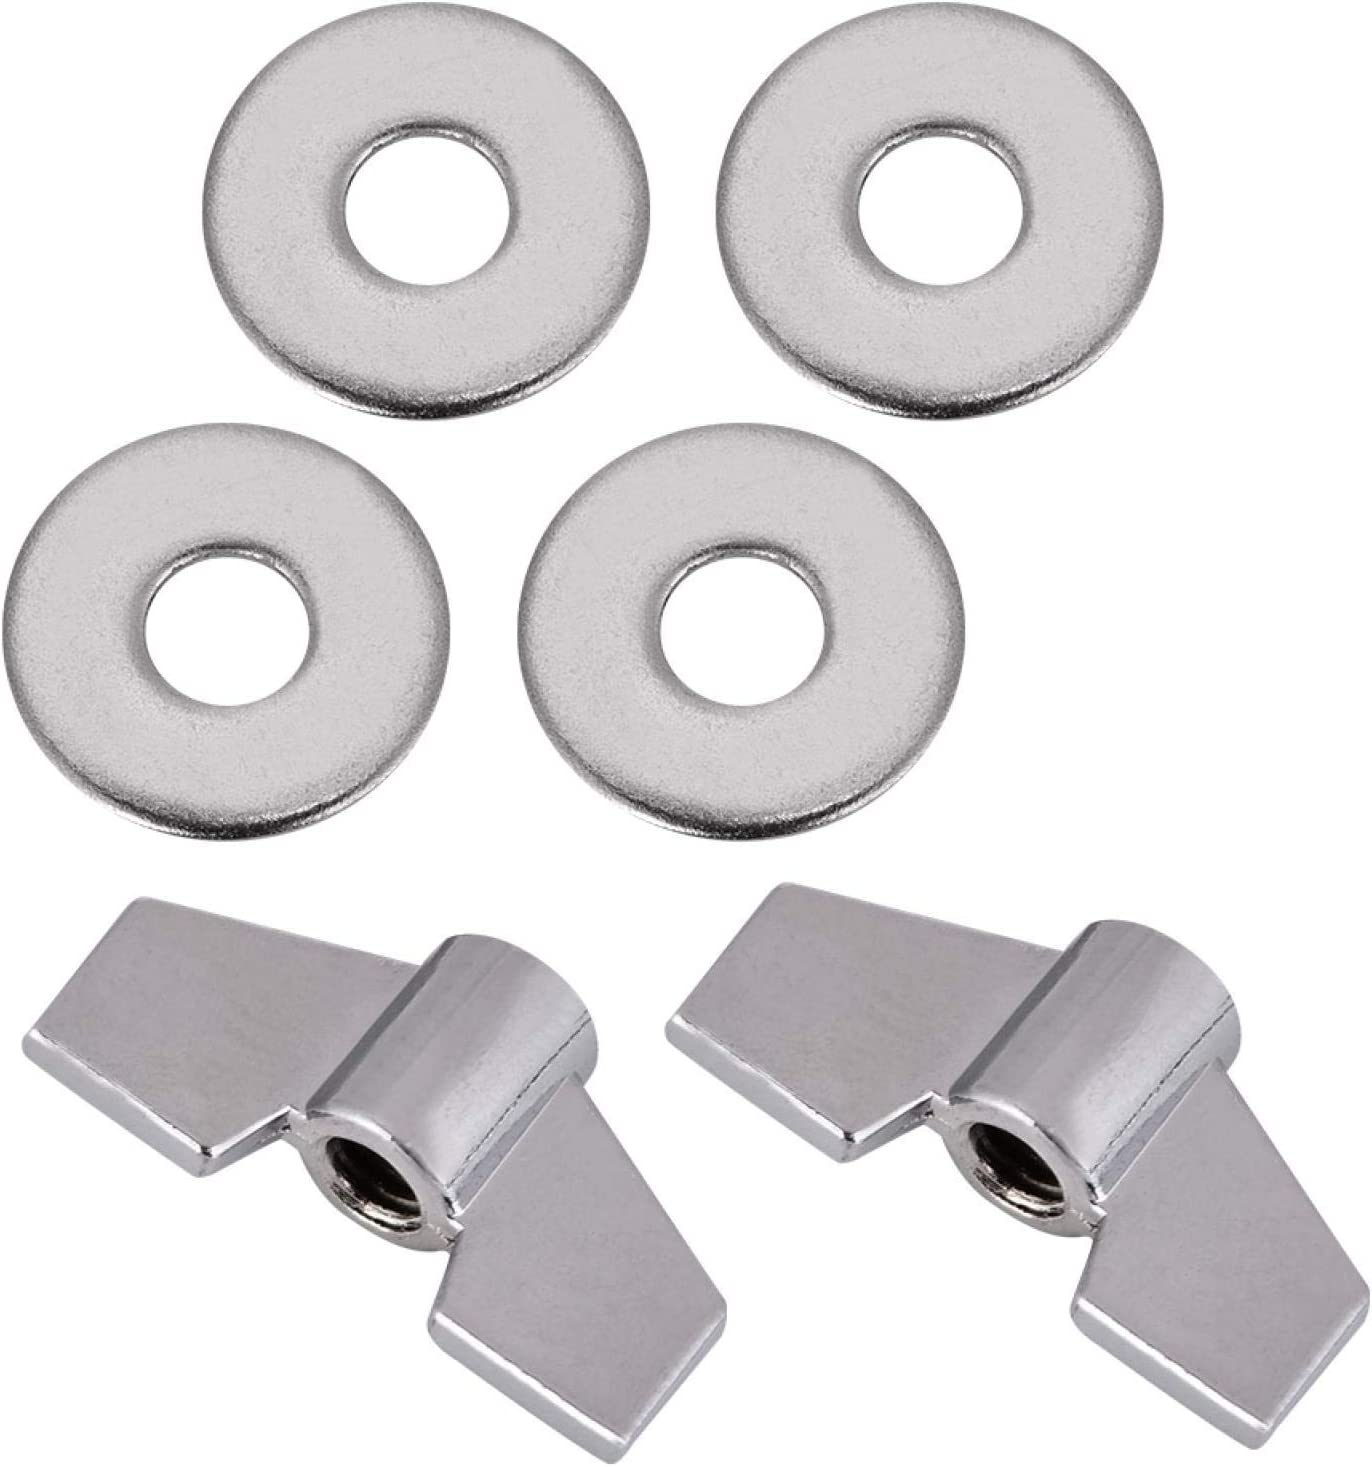 Kudoo Ranking OFFicial store TOP2 Plastic Wing Nuts Drum Felt Cymba Practical Clutch Hi-Hat